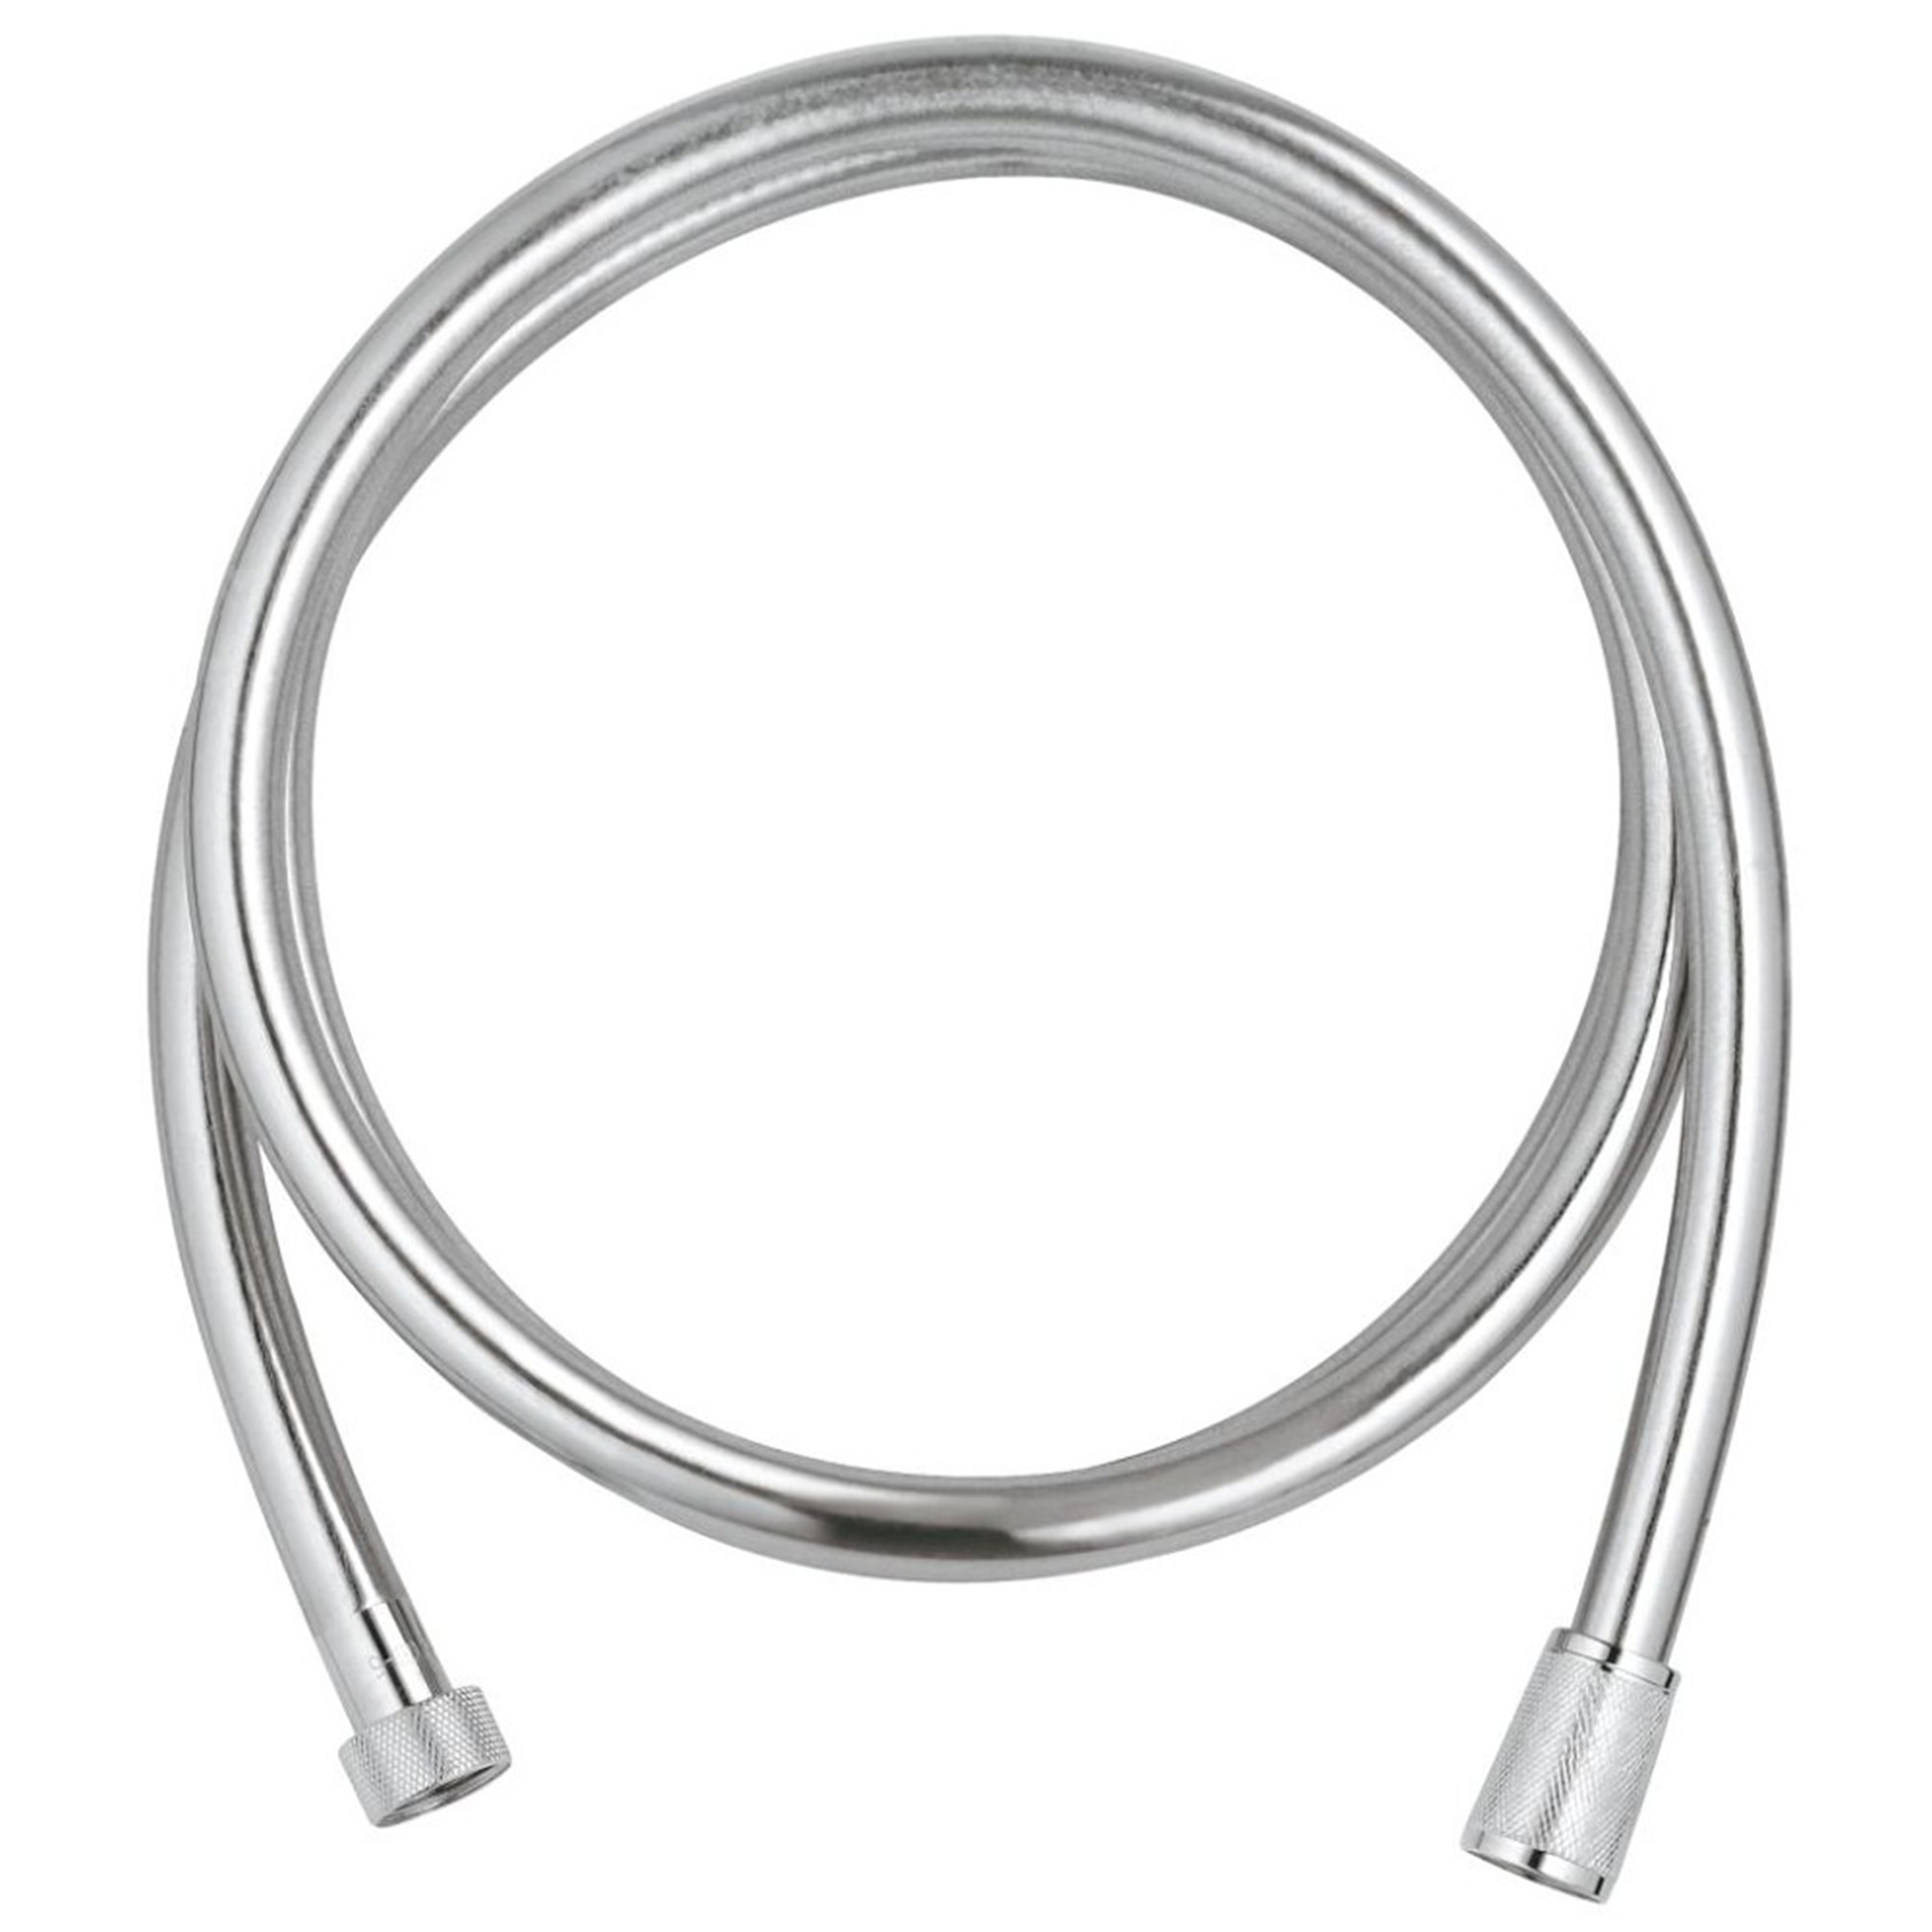 Grohe doucheslang silver 1-2x200cm zilver